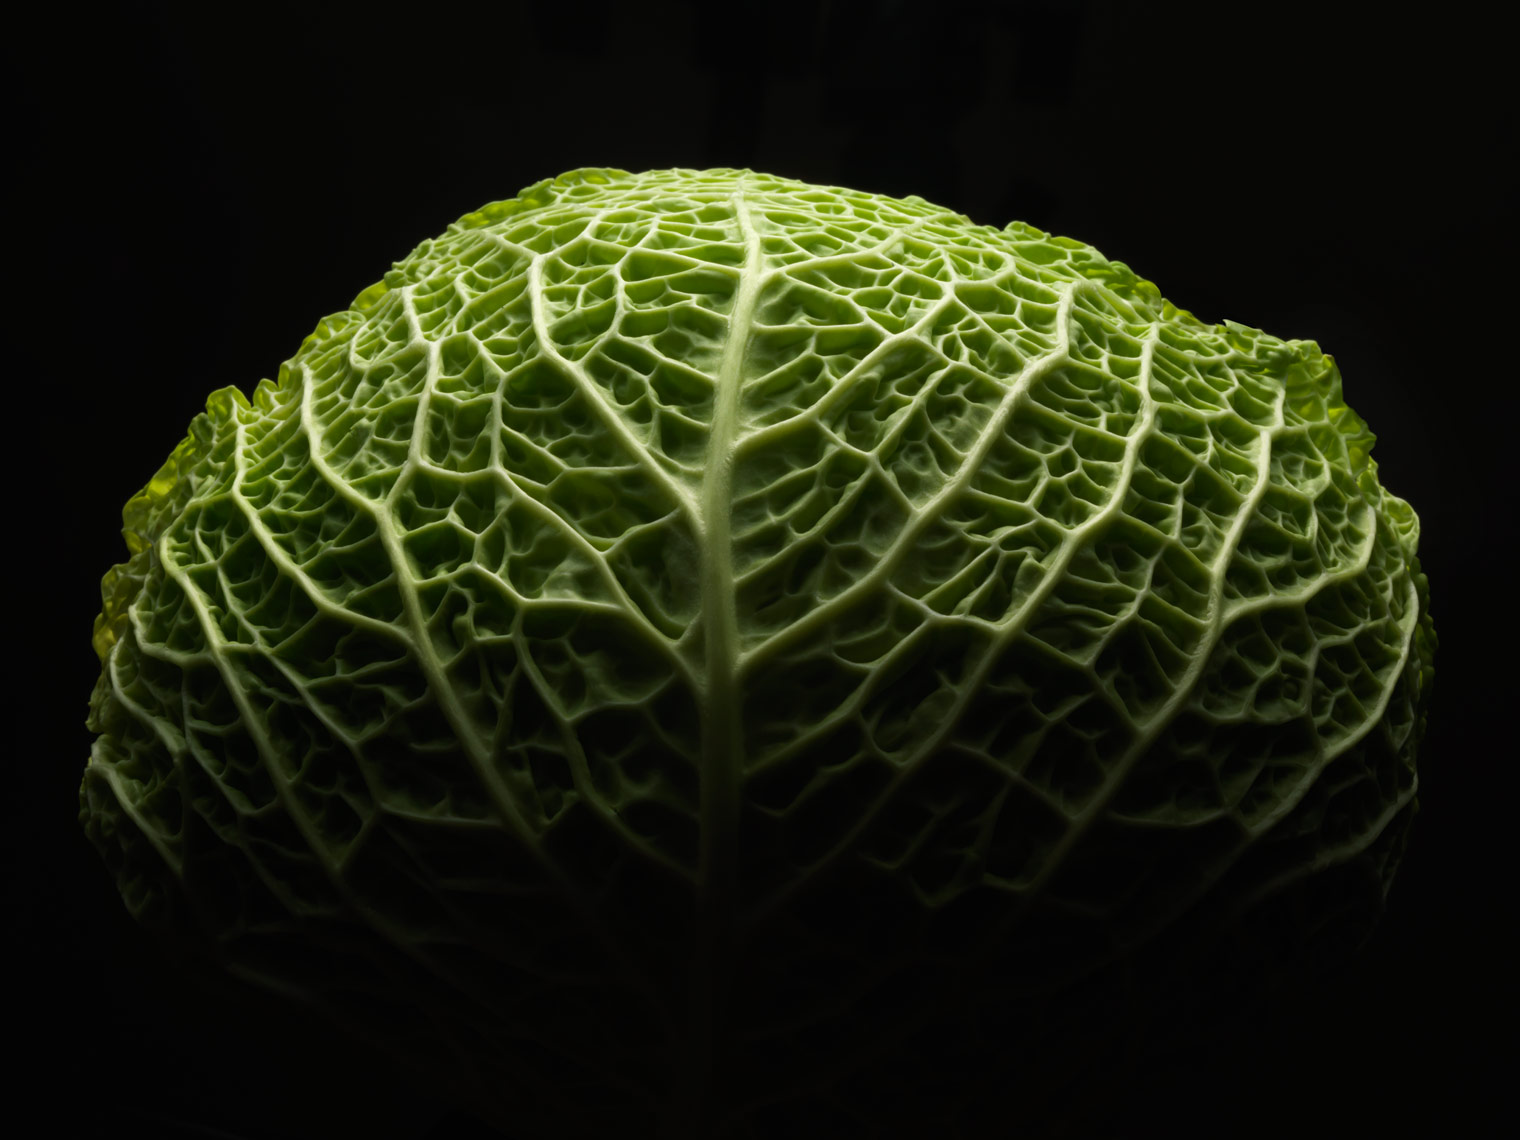 head of green cabbage that looks like a brain with dramatic lighting